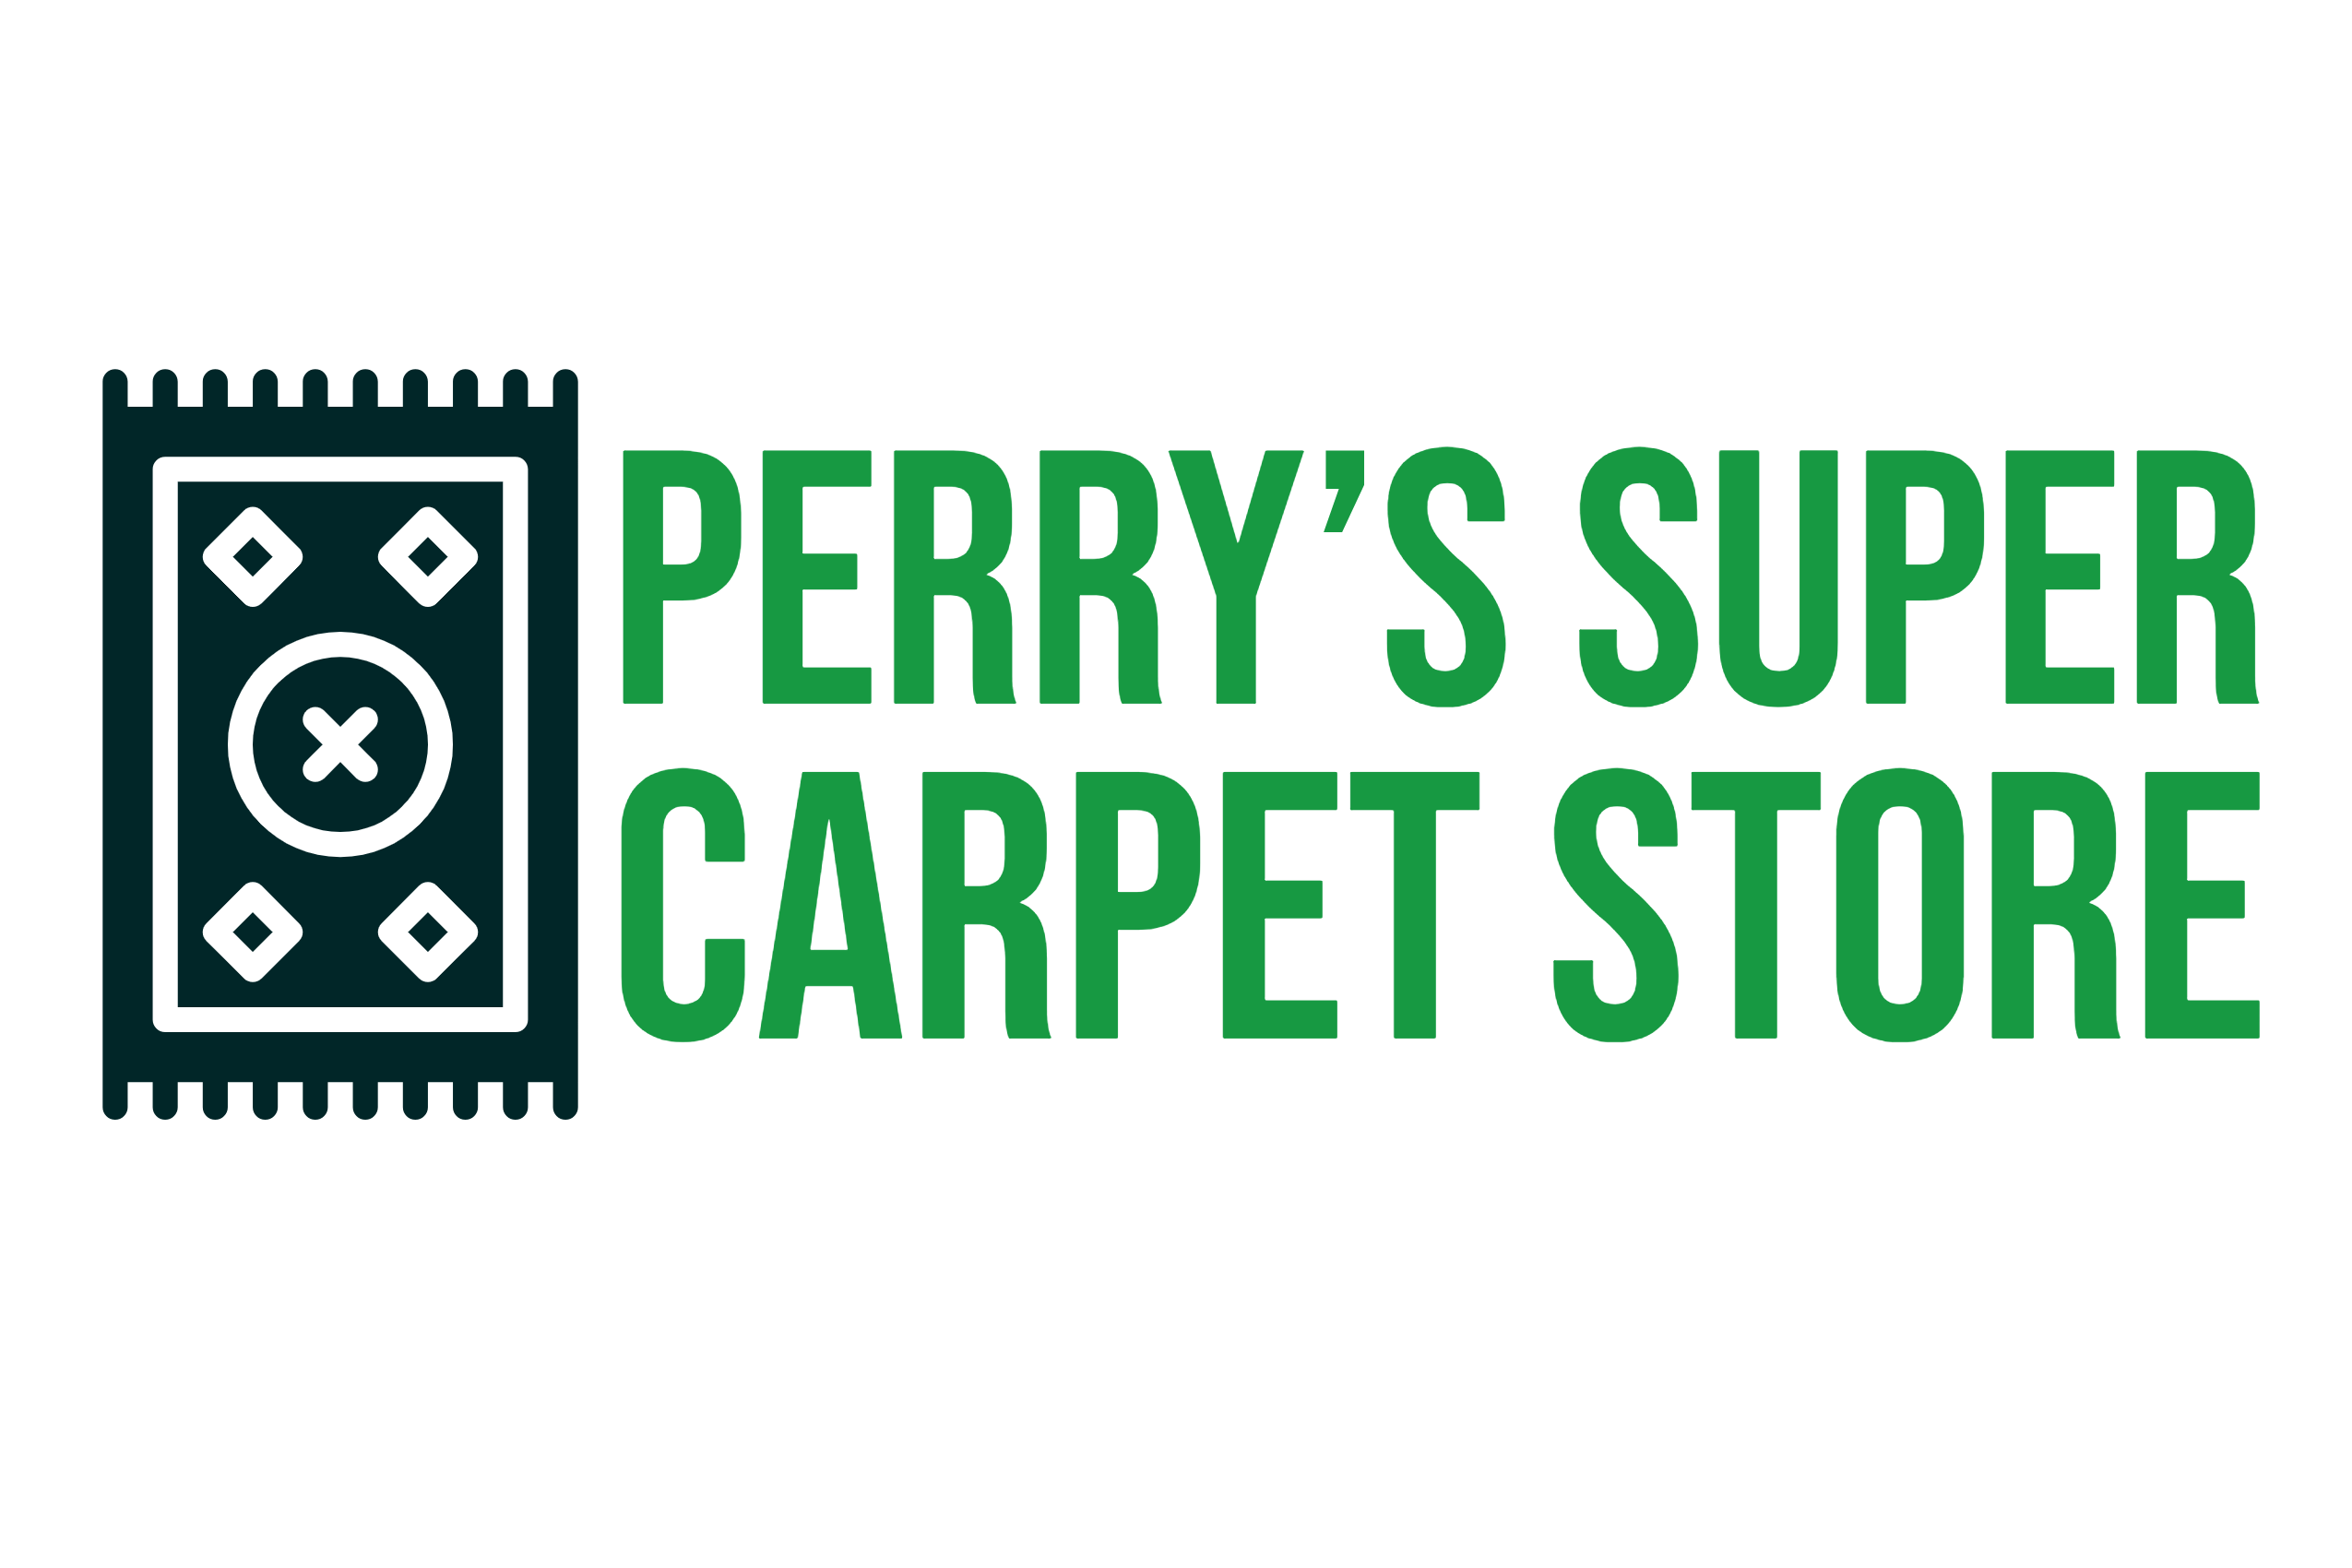 Perry's Super Carpet Store